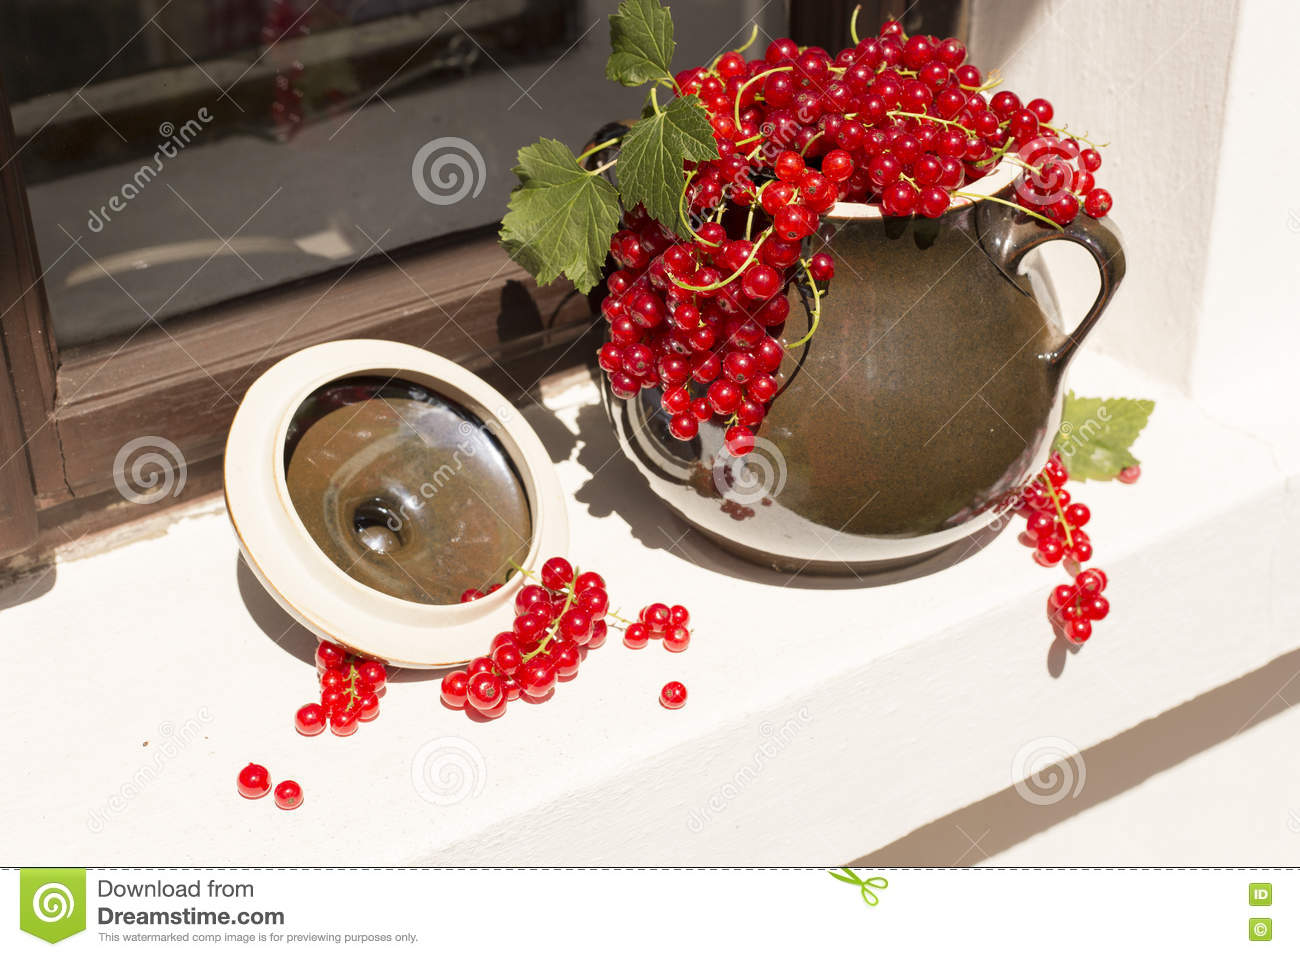 Pitcher/jug of redcurrant on a direct sunlight on a window